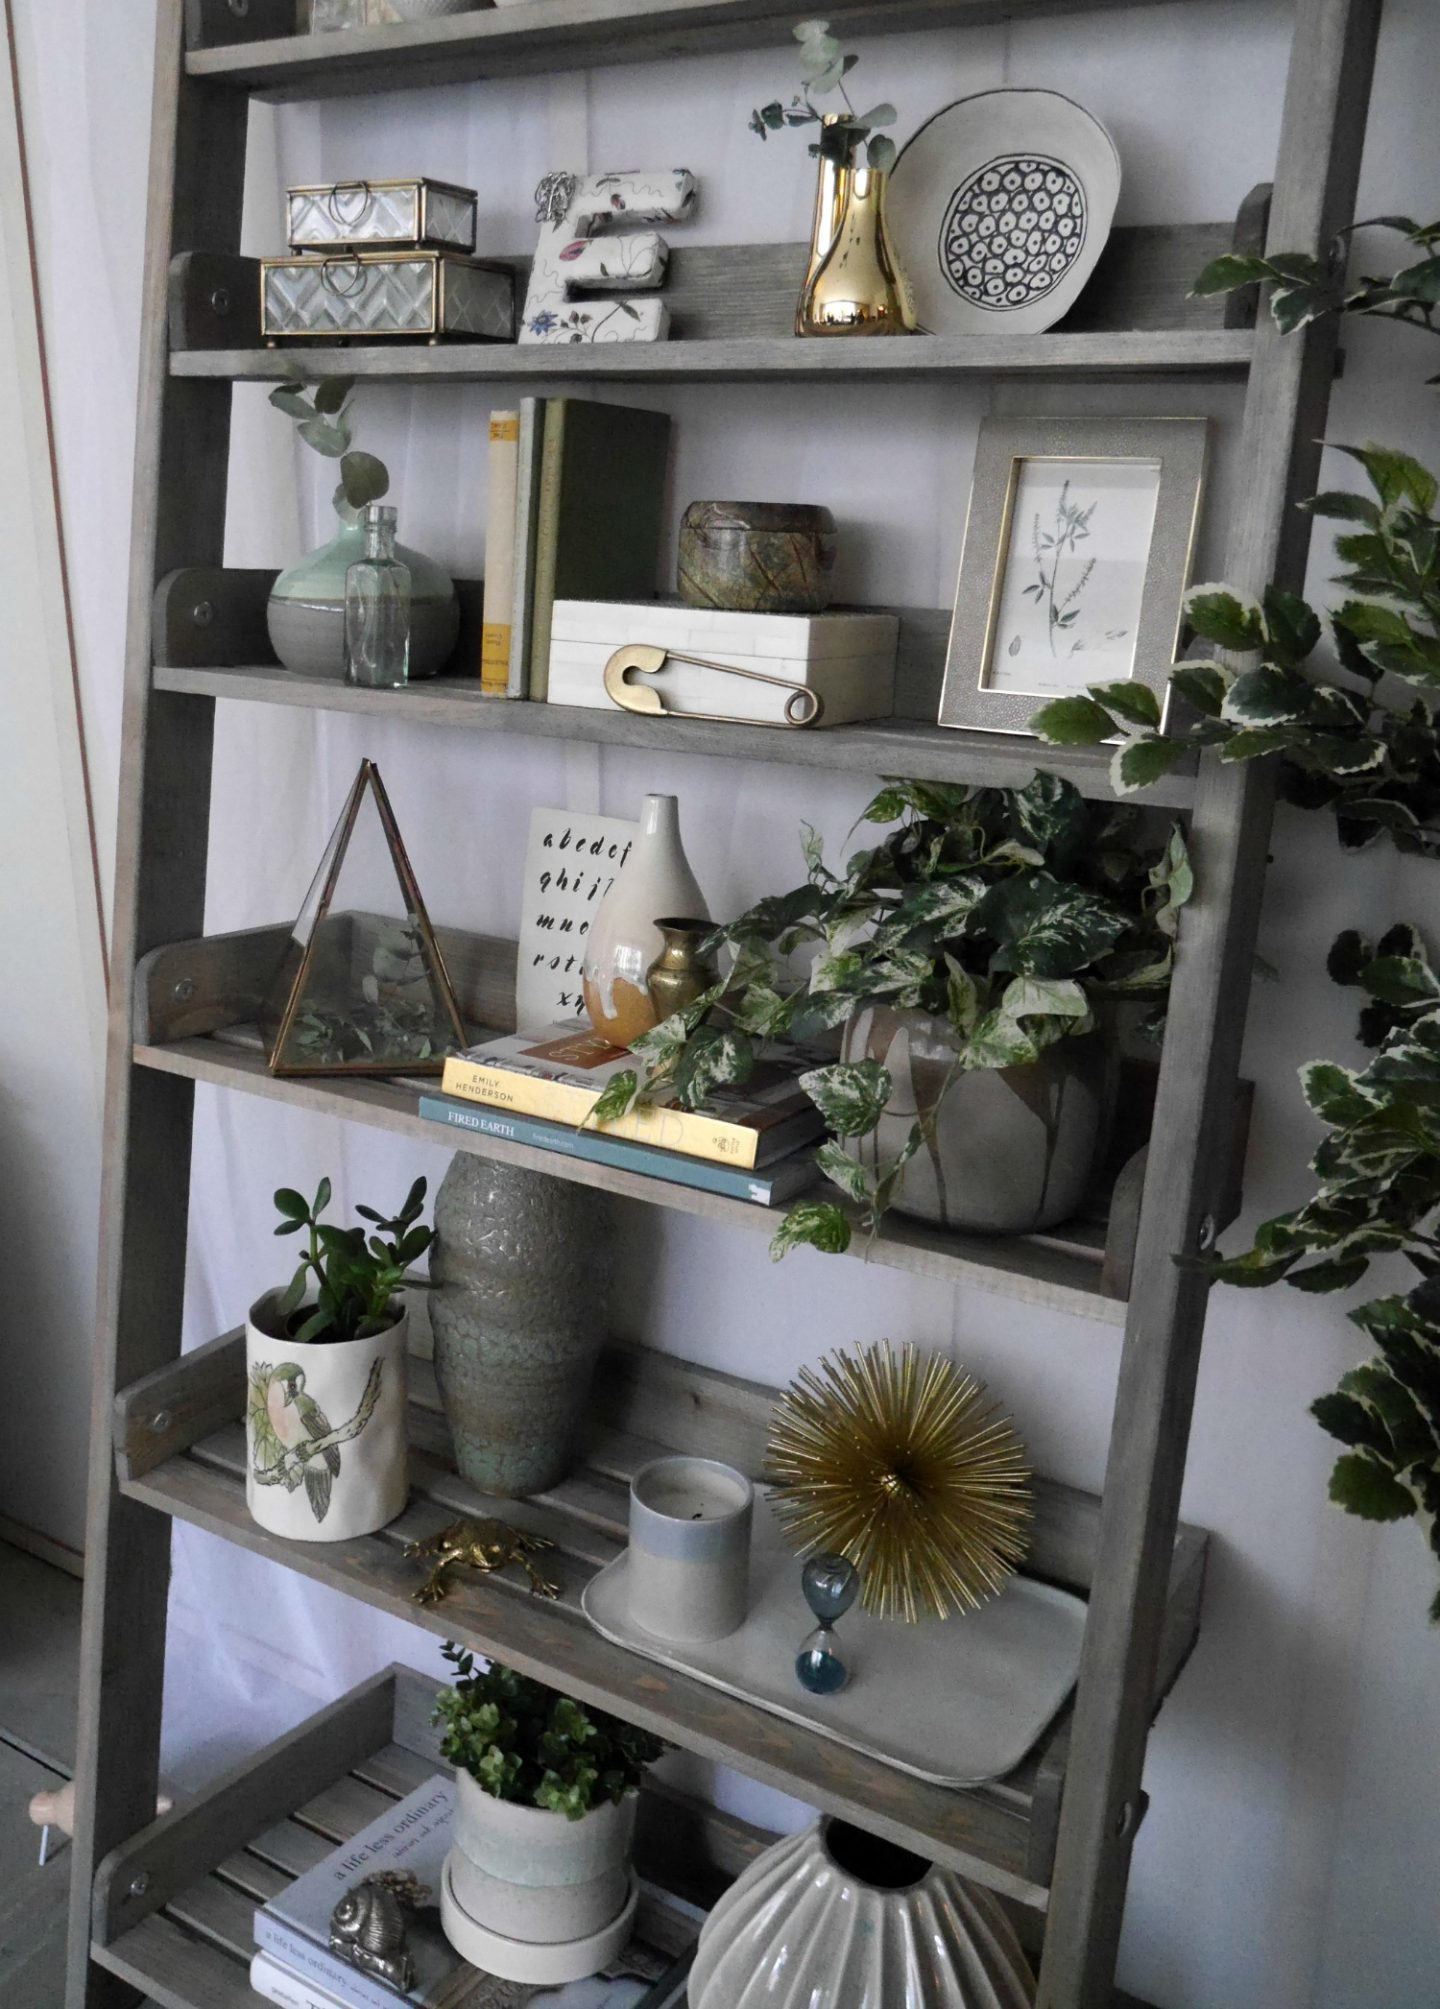 How to style a book case - home styling tips from Amara